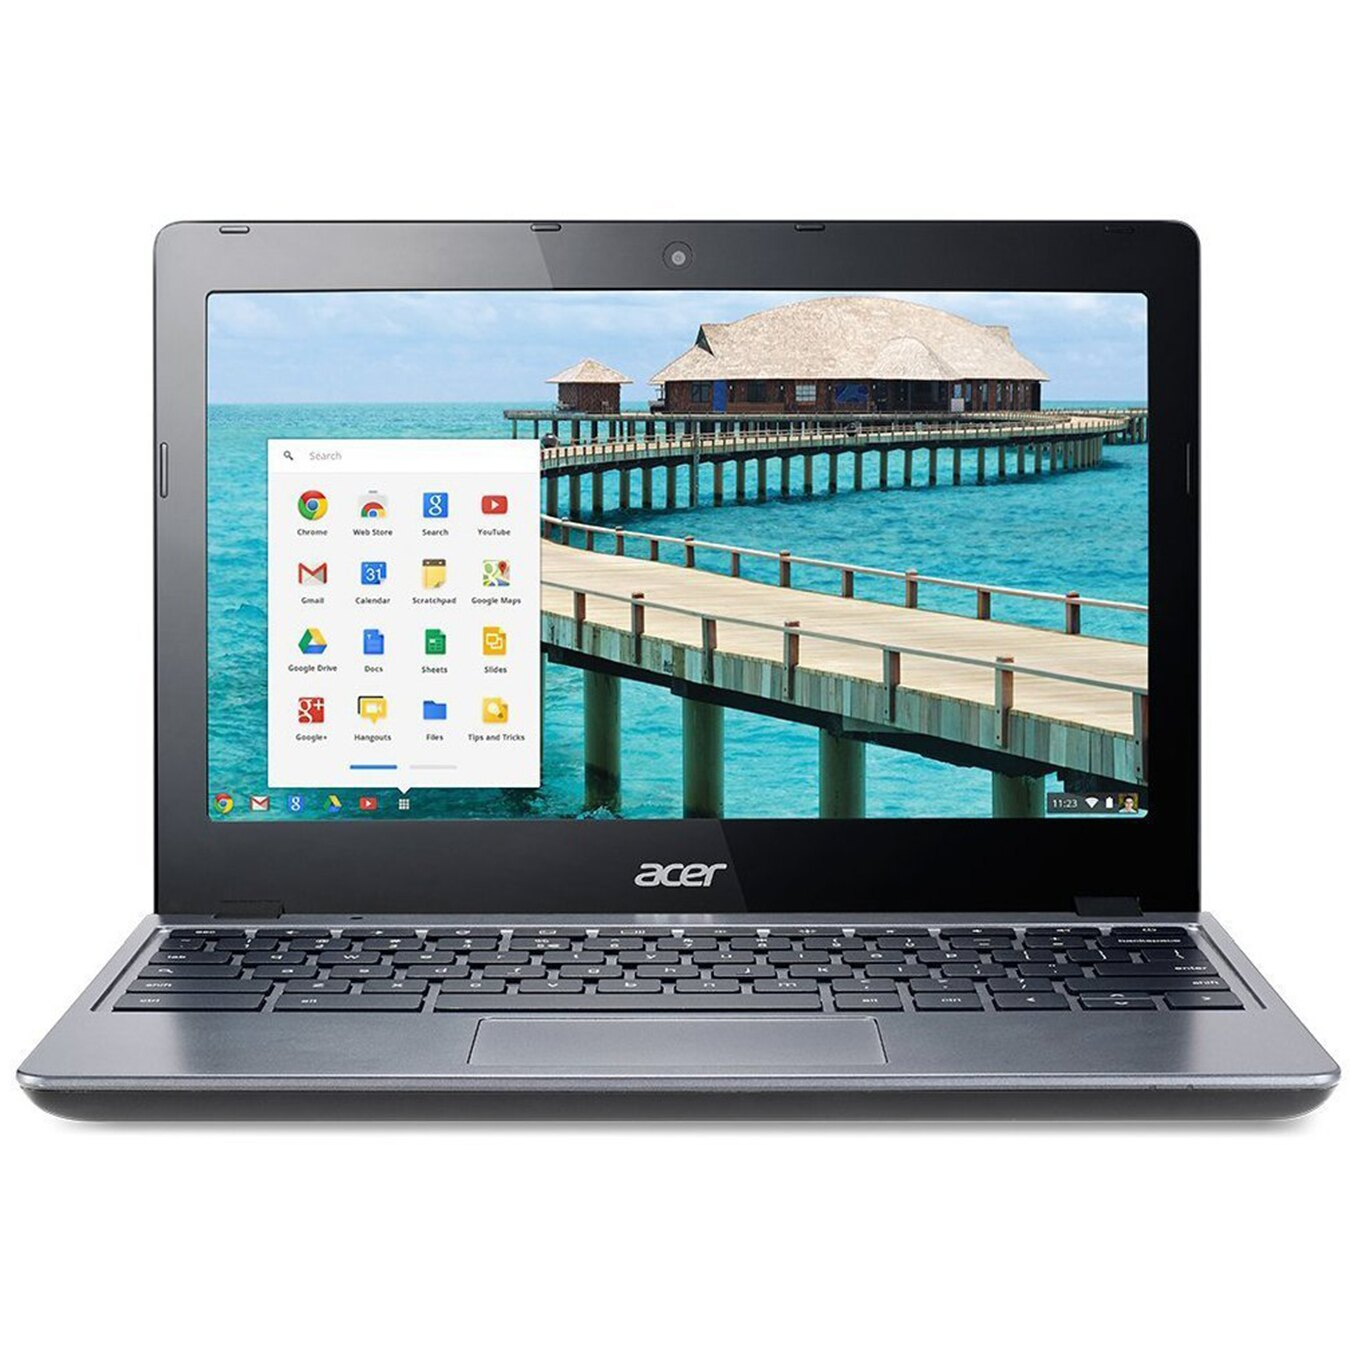 Acer C720 Google Chromebook Notebook Laptop 11.6-Inch LED 4GB RAM 16GB SSD 1